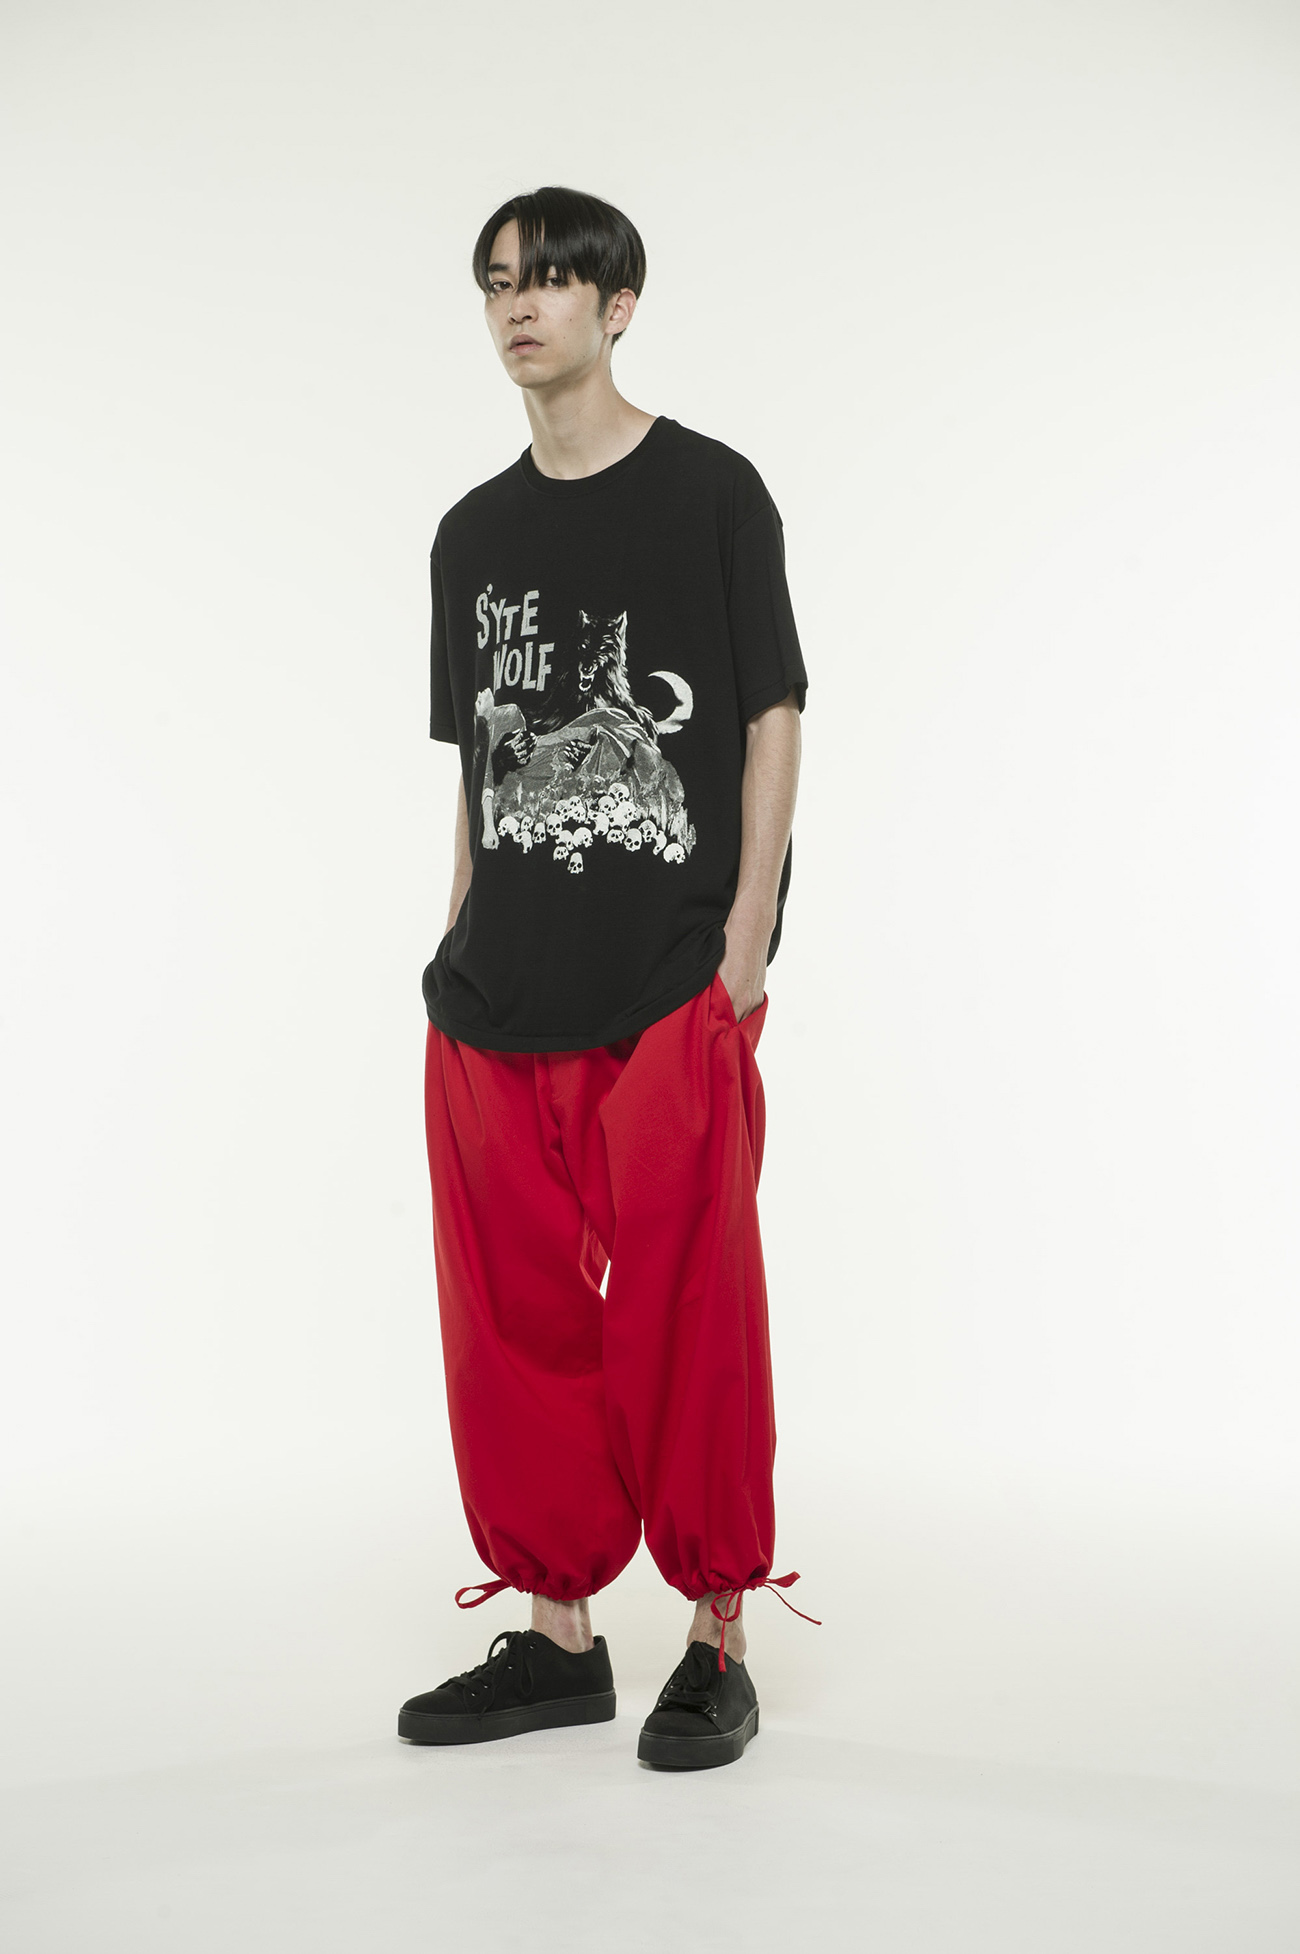 20/CottonJersey S'YTE WOLF T-Shirt